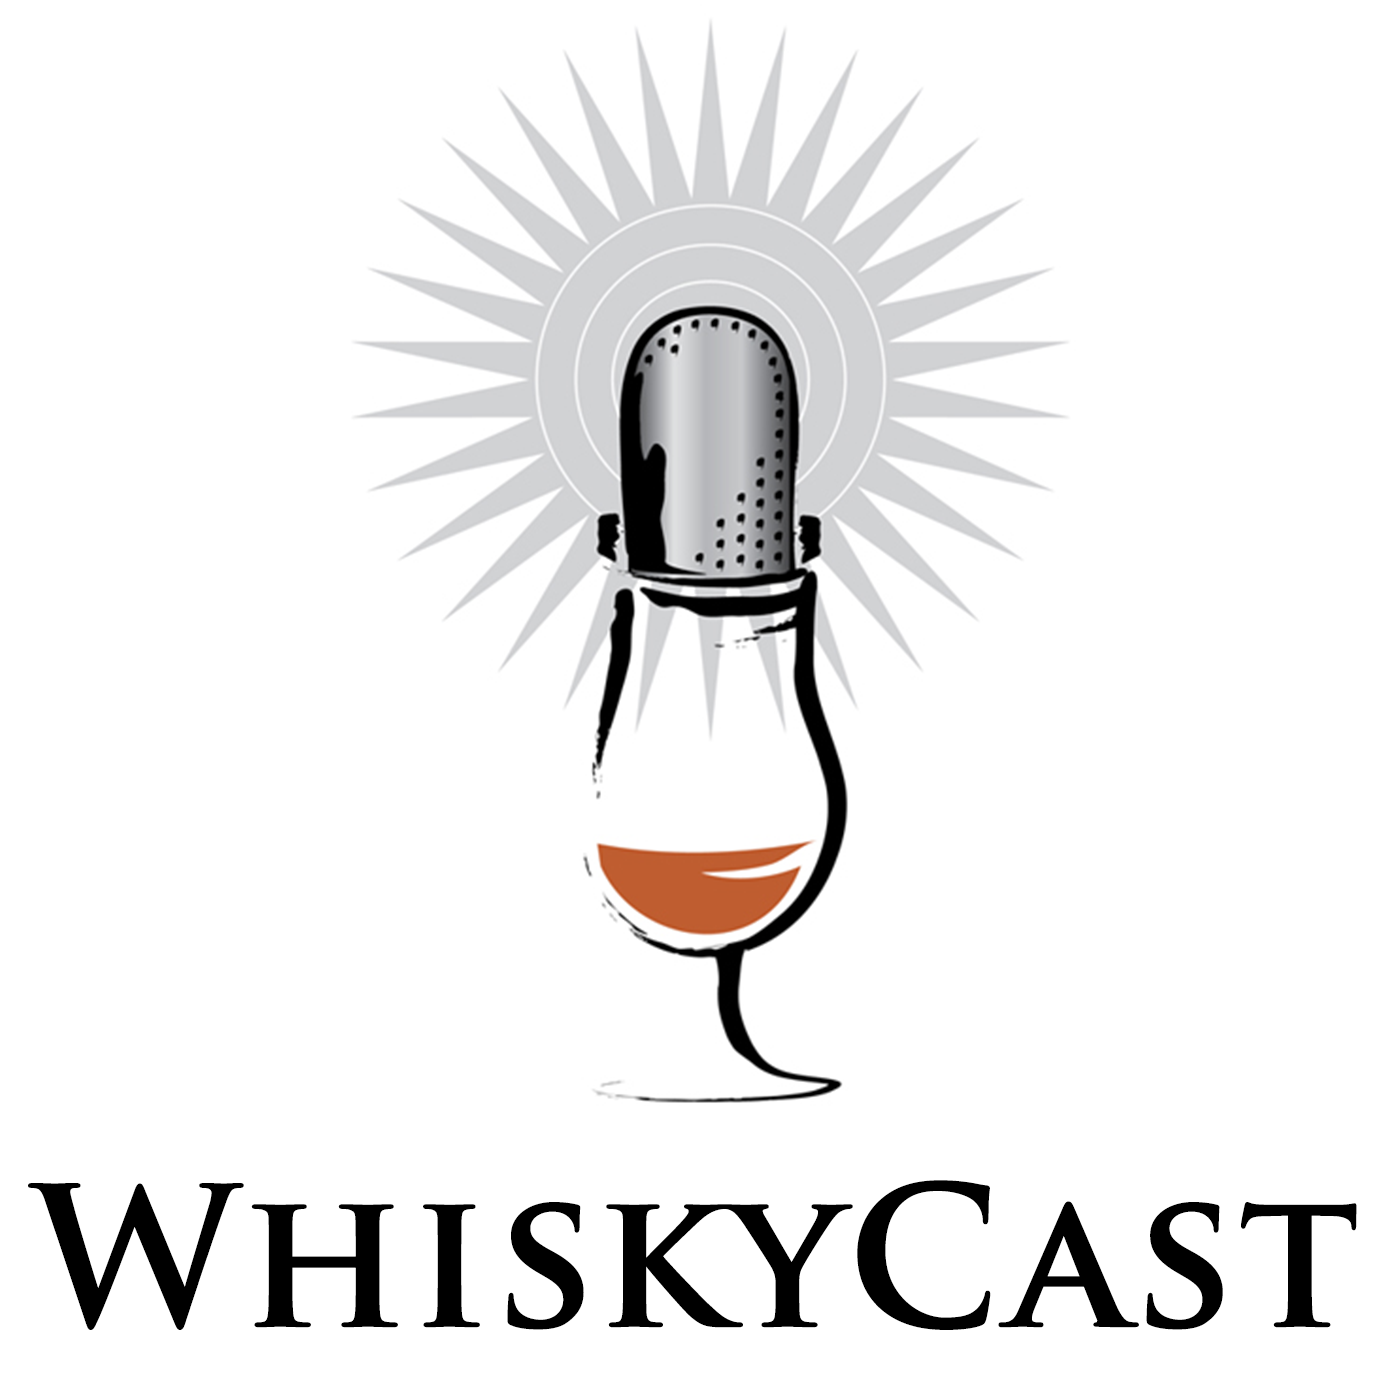 WhiskyCast Episode 436: August 3, 2013